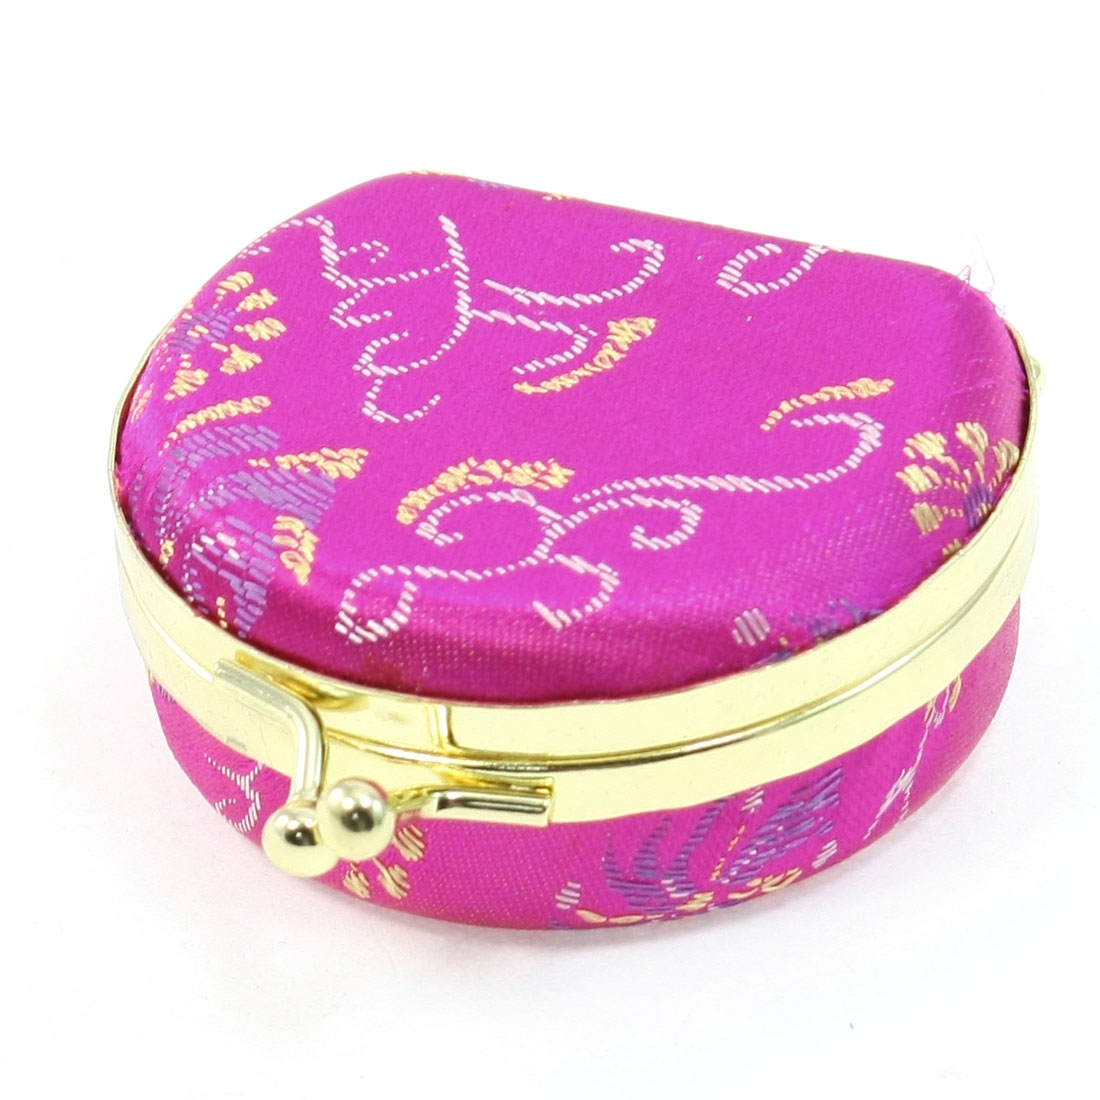 Embroidered Metal Closure Lock Jewelry Box for Earrings Necklace